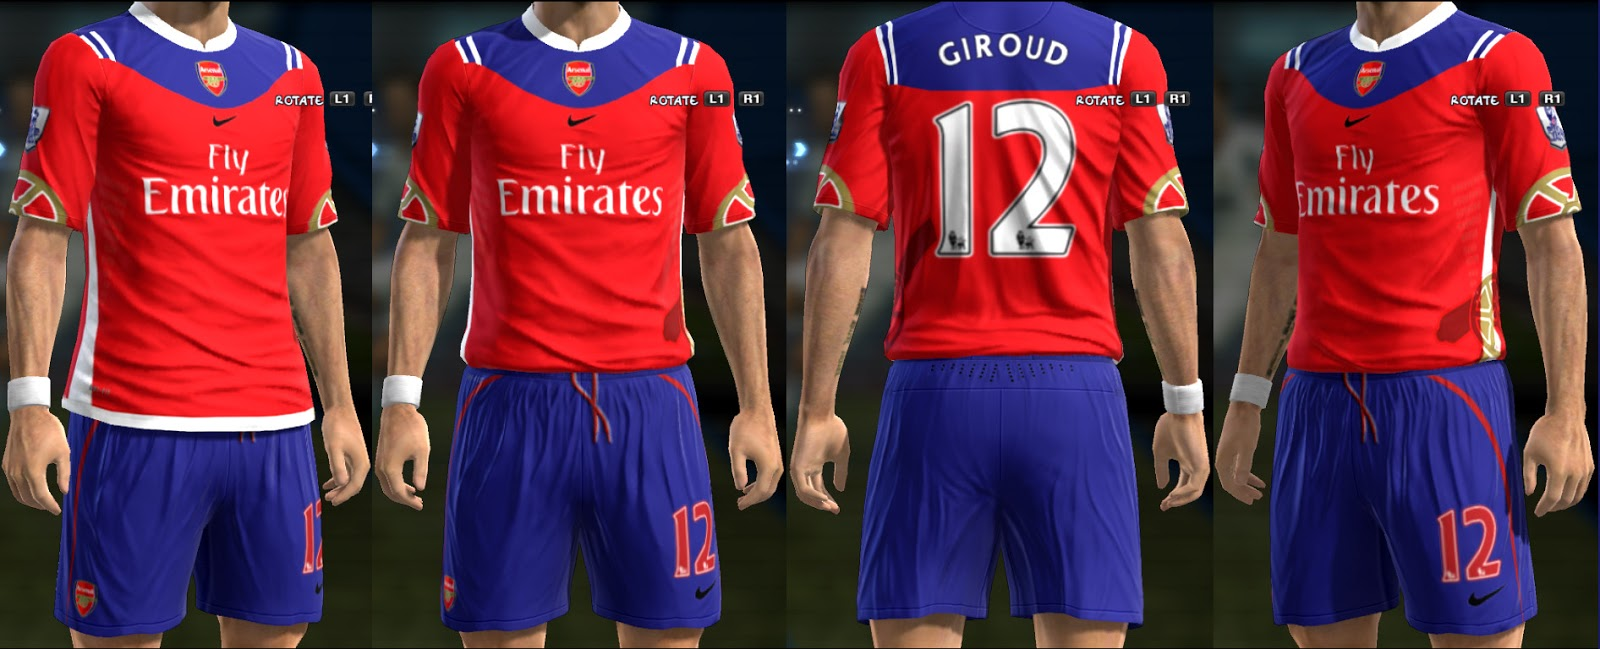 Download Fantasy Kits Arsenal PES 2013 | Mediafire